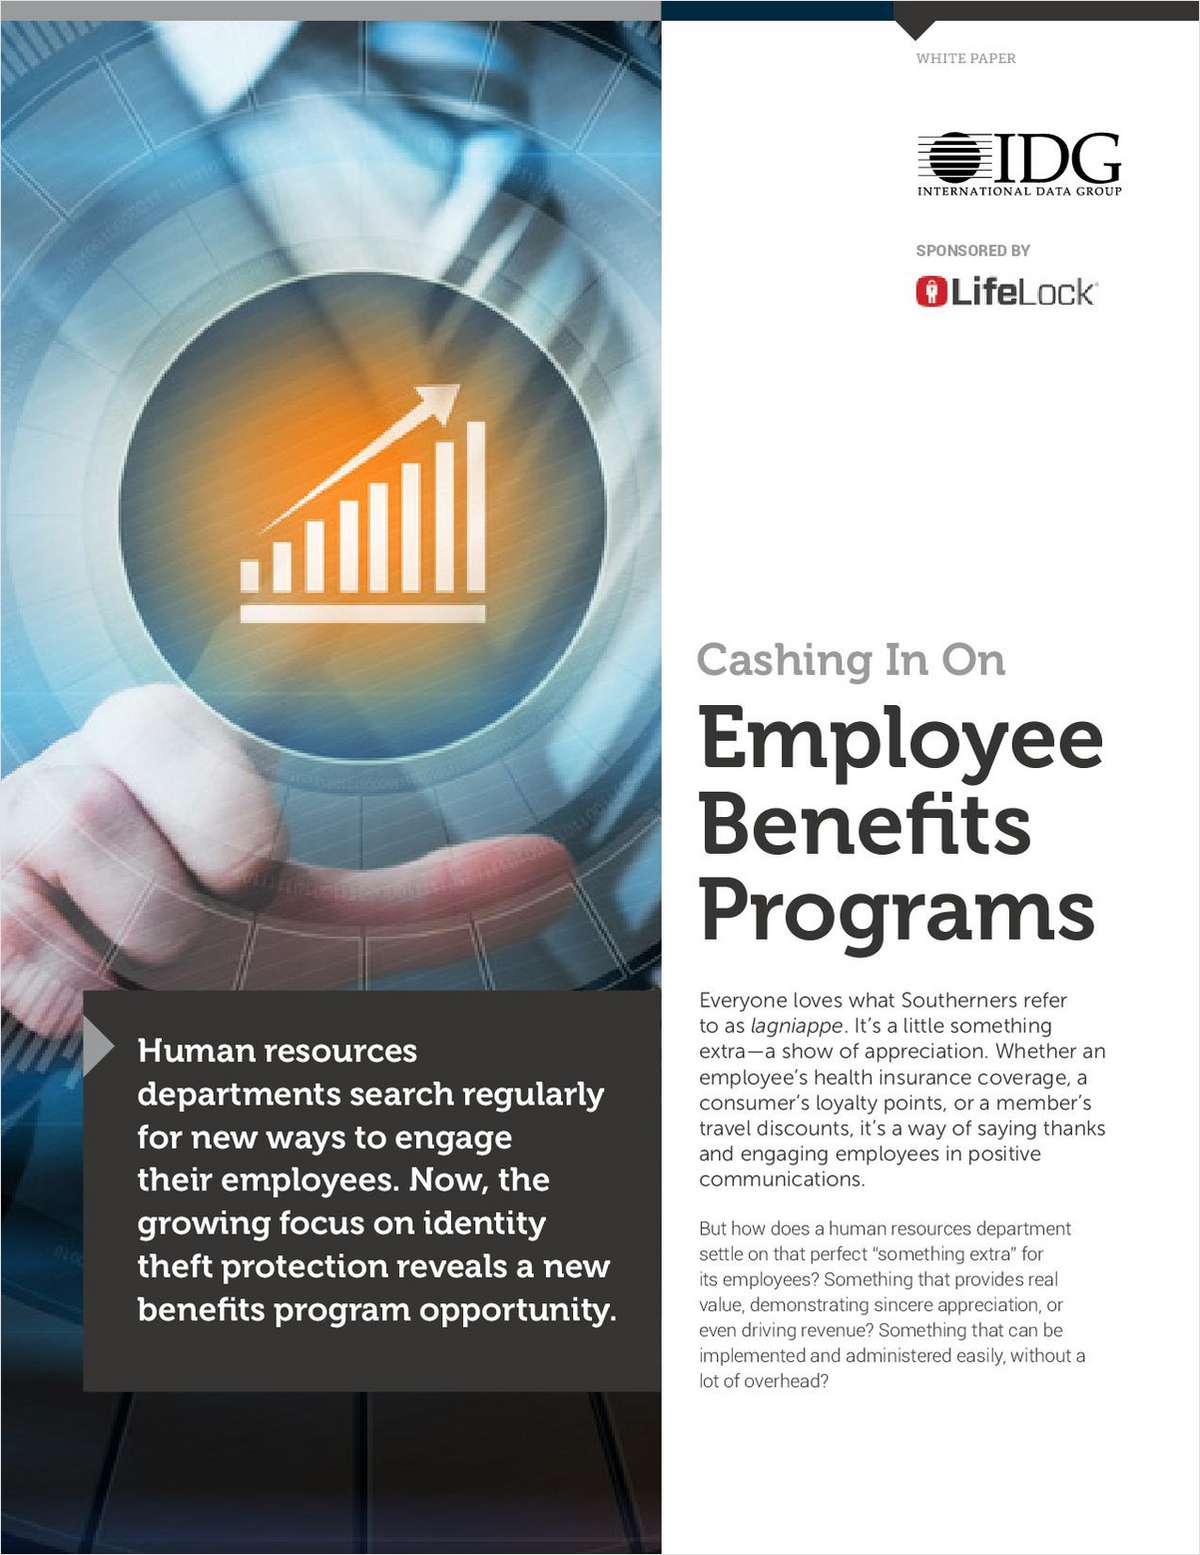 Cashing in on employee benefit programs request your free white paper